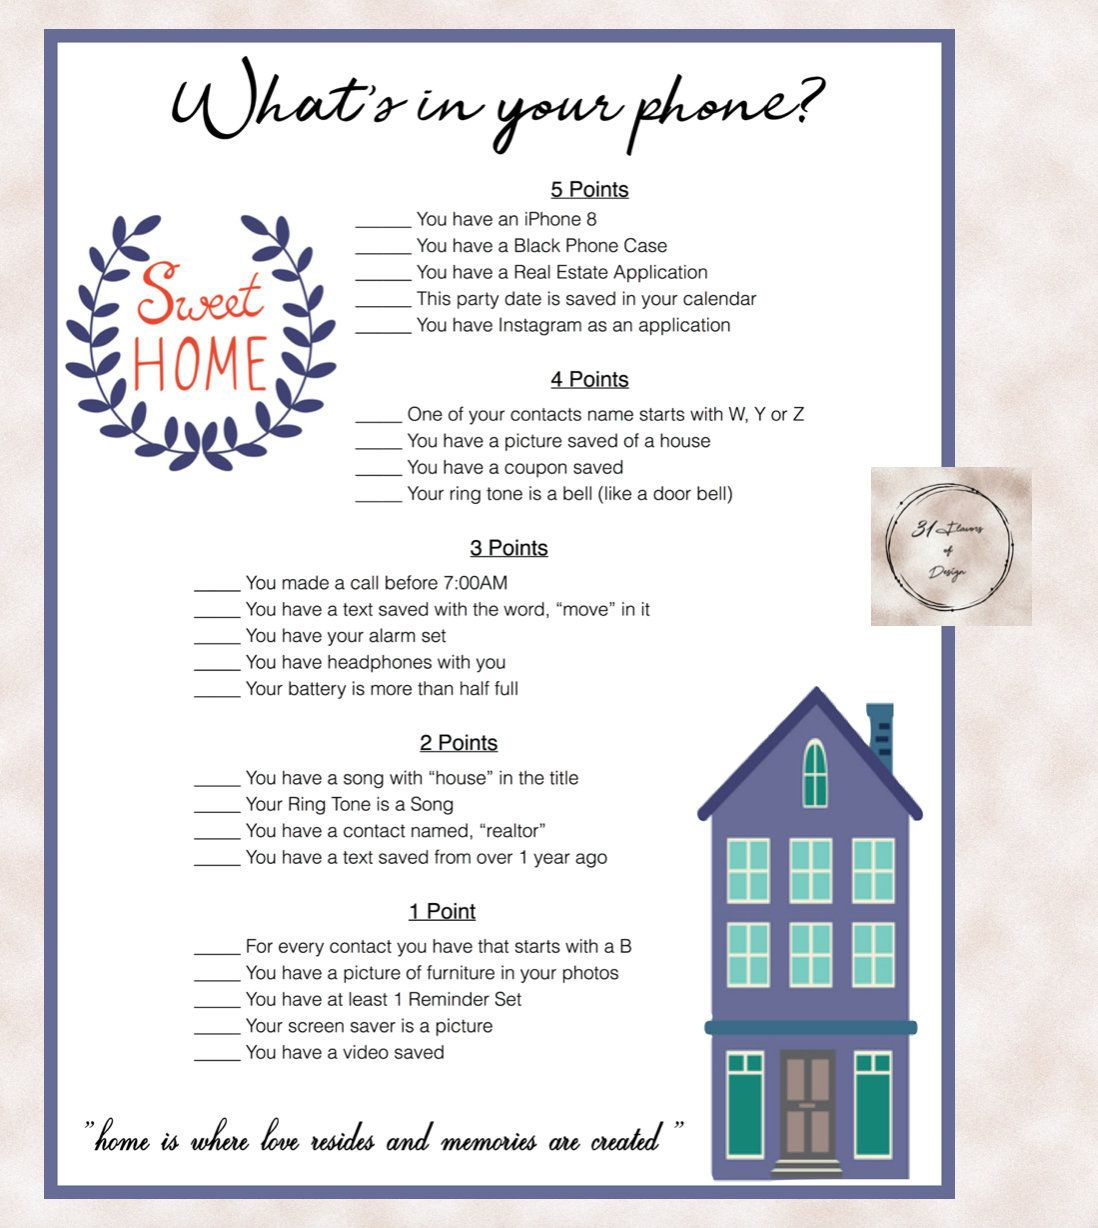 House Warming Party What's in your phone? Download